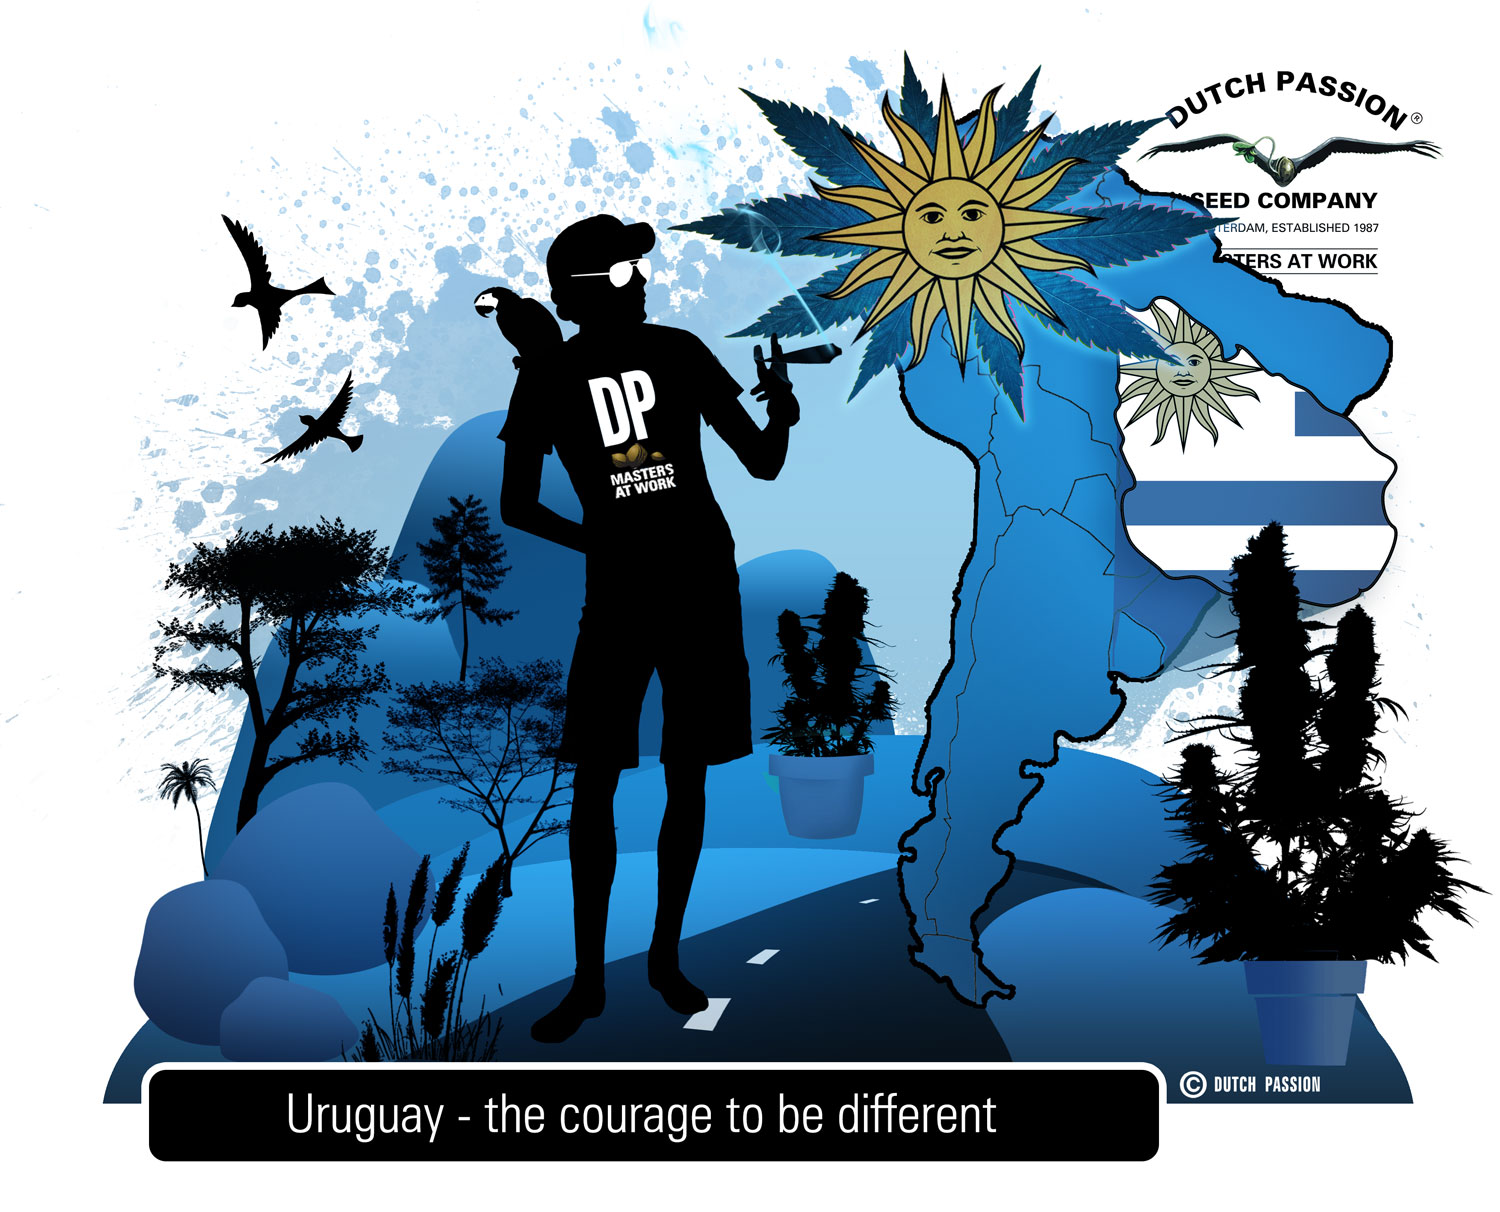 the legalization of marijuana in urugauy Uruguay became the first country to legalize the growing, sale and smoking of marijuana on tuesday, a pioneering social experiment that will be closely watched by other nations debating drug.